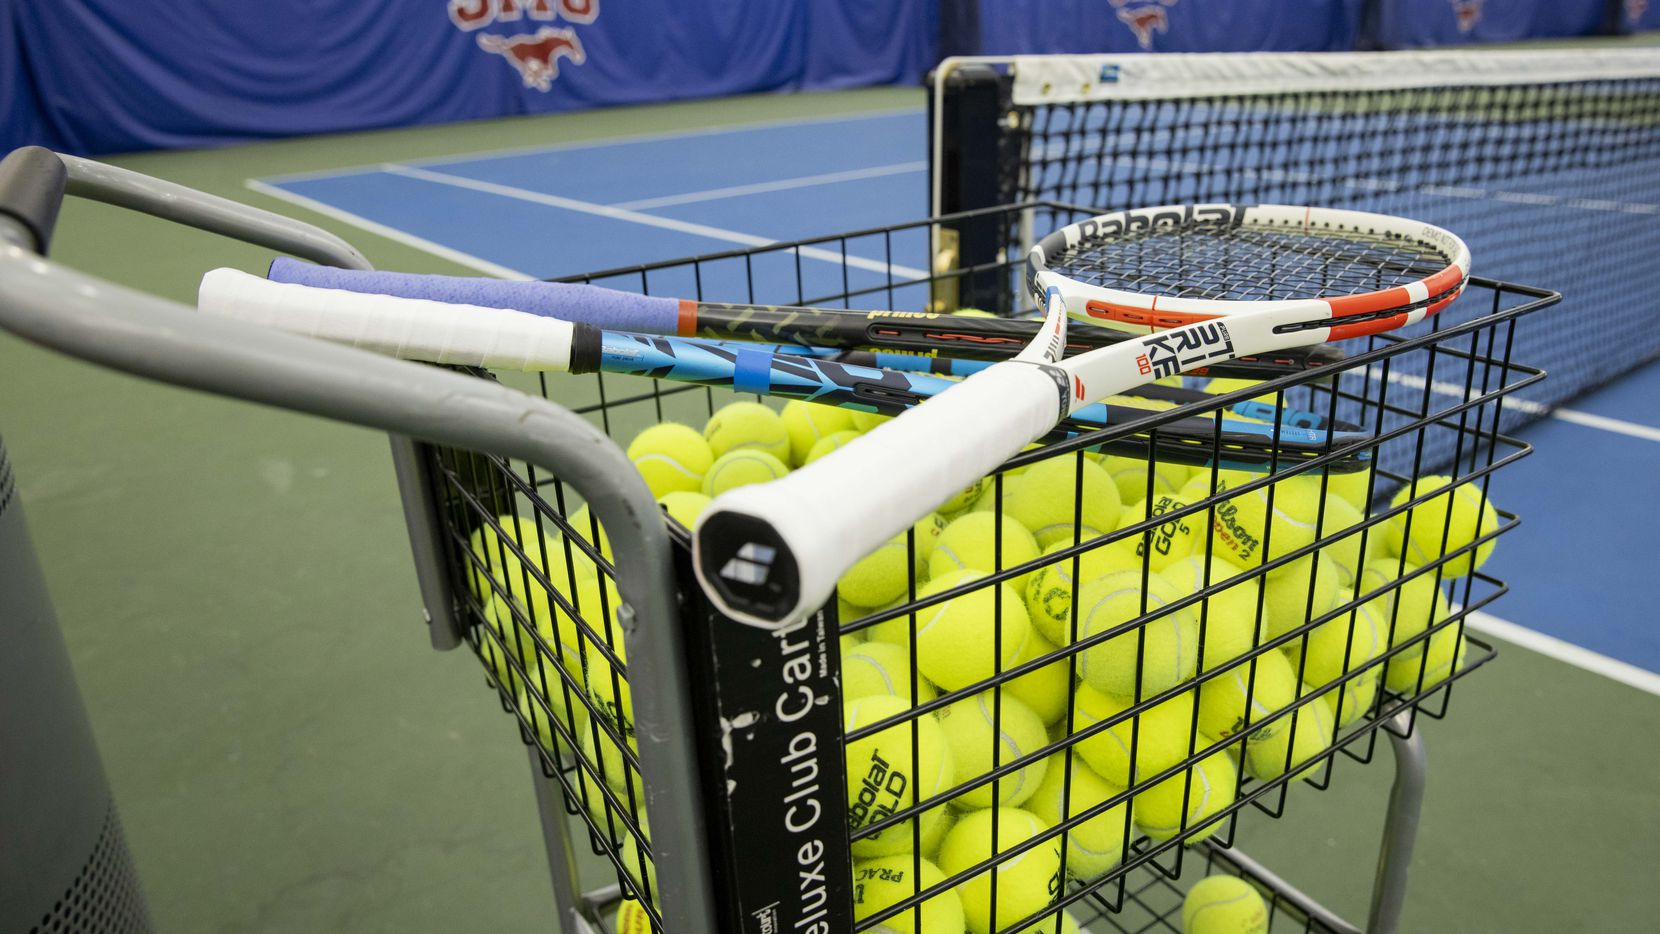 Tennis balls and racquets during a press conference to announce a new ATP tennis tour event coming to Dallas at the SMU Styslinger/Altec Tennis Complex on Wednesday, May 19, 2021, in Dallas. (Juan Figueroa/The Dallas Morning News)